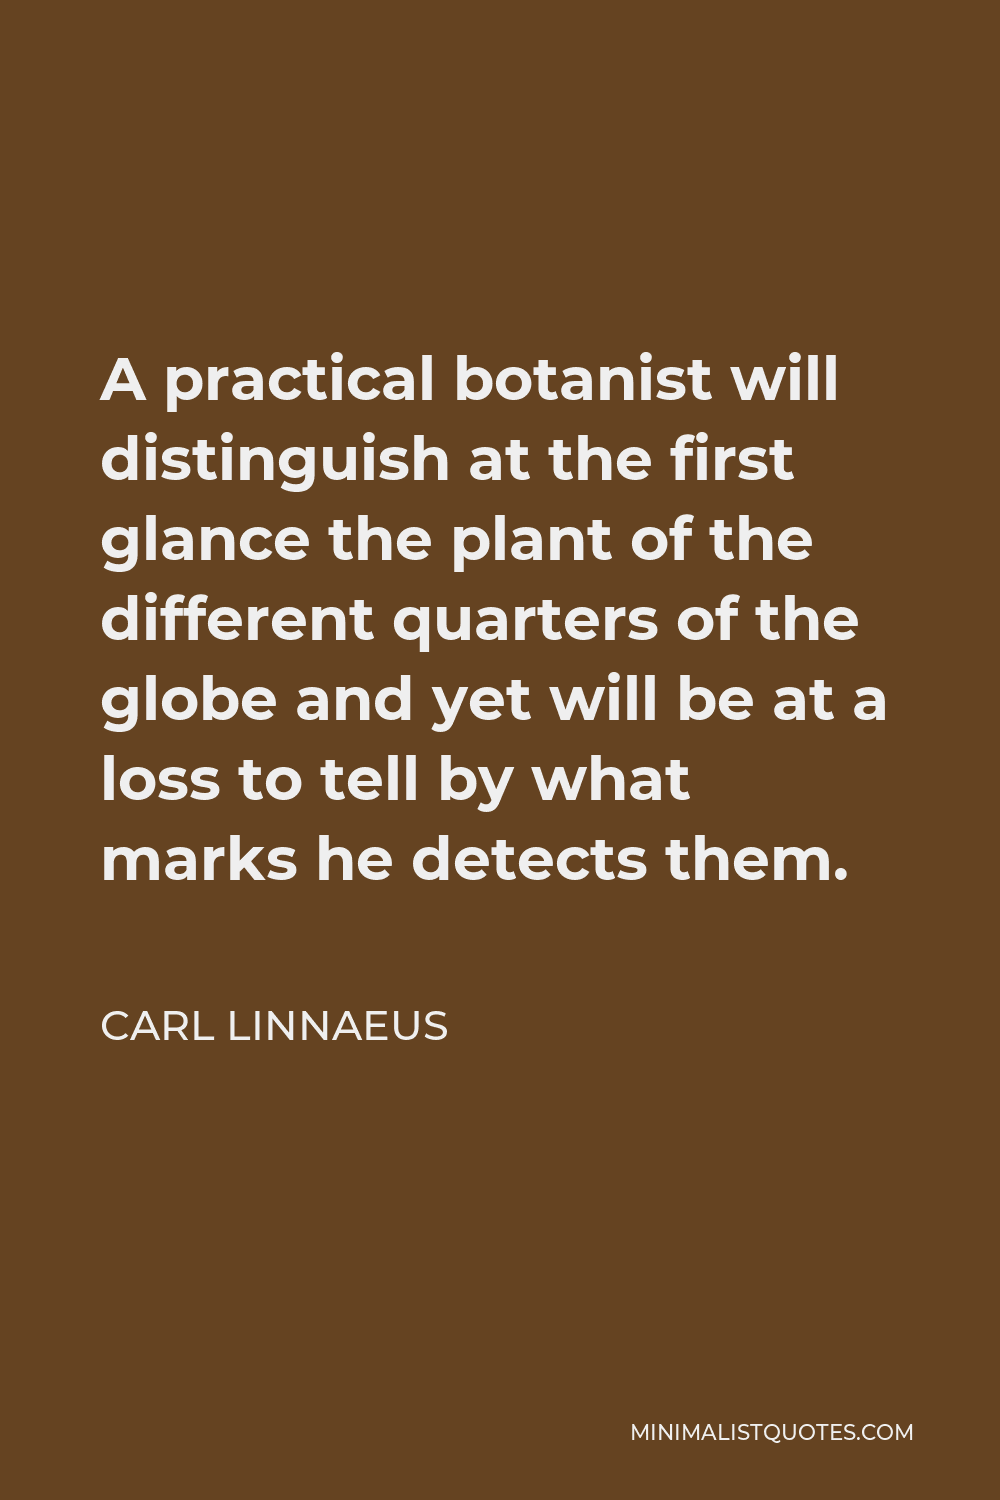 Carl Linnaeus Quote - A practical botanist will distinguish at the first glance the plant of the different quarters of the globe and yet will be at a loss to tell by what marks he detects them.